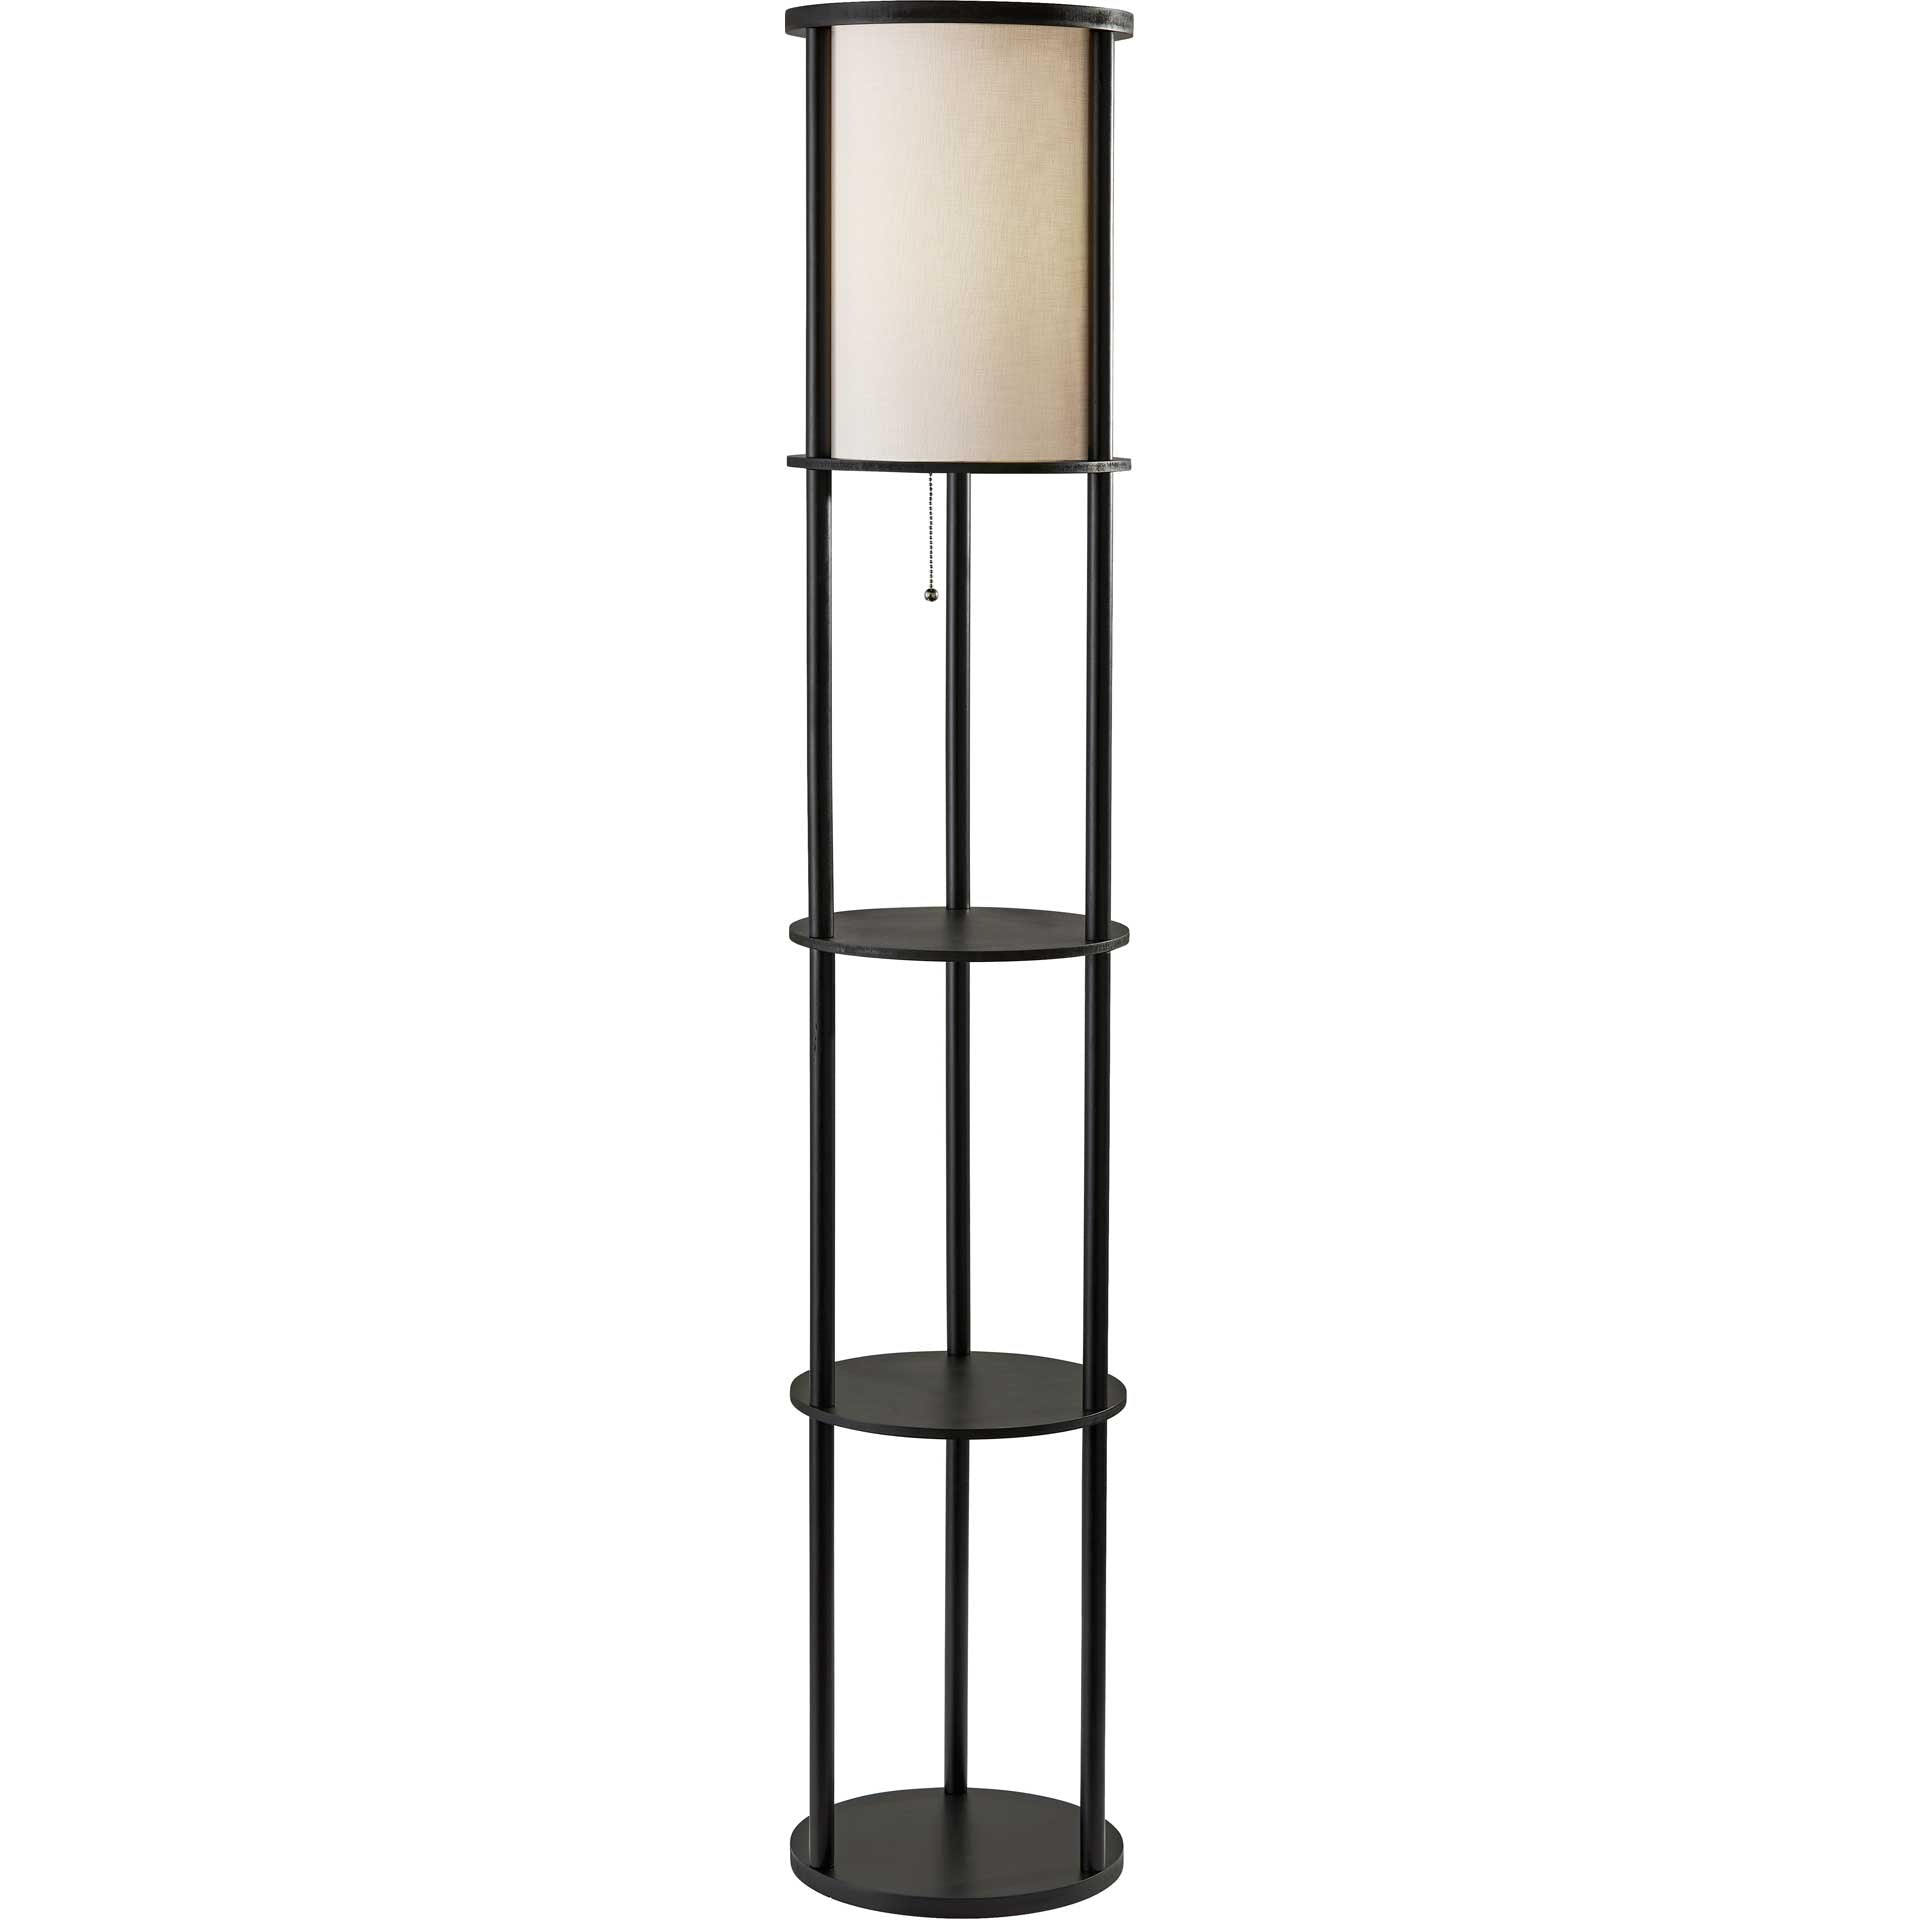 Stavanger Shelf Floor Lamp Black